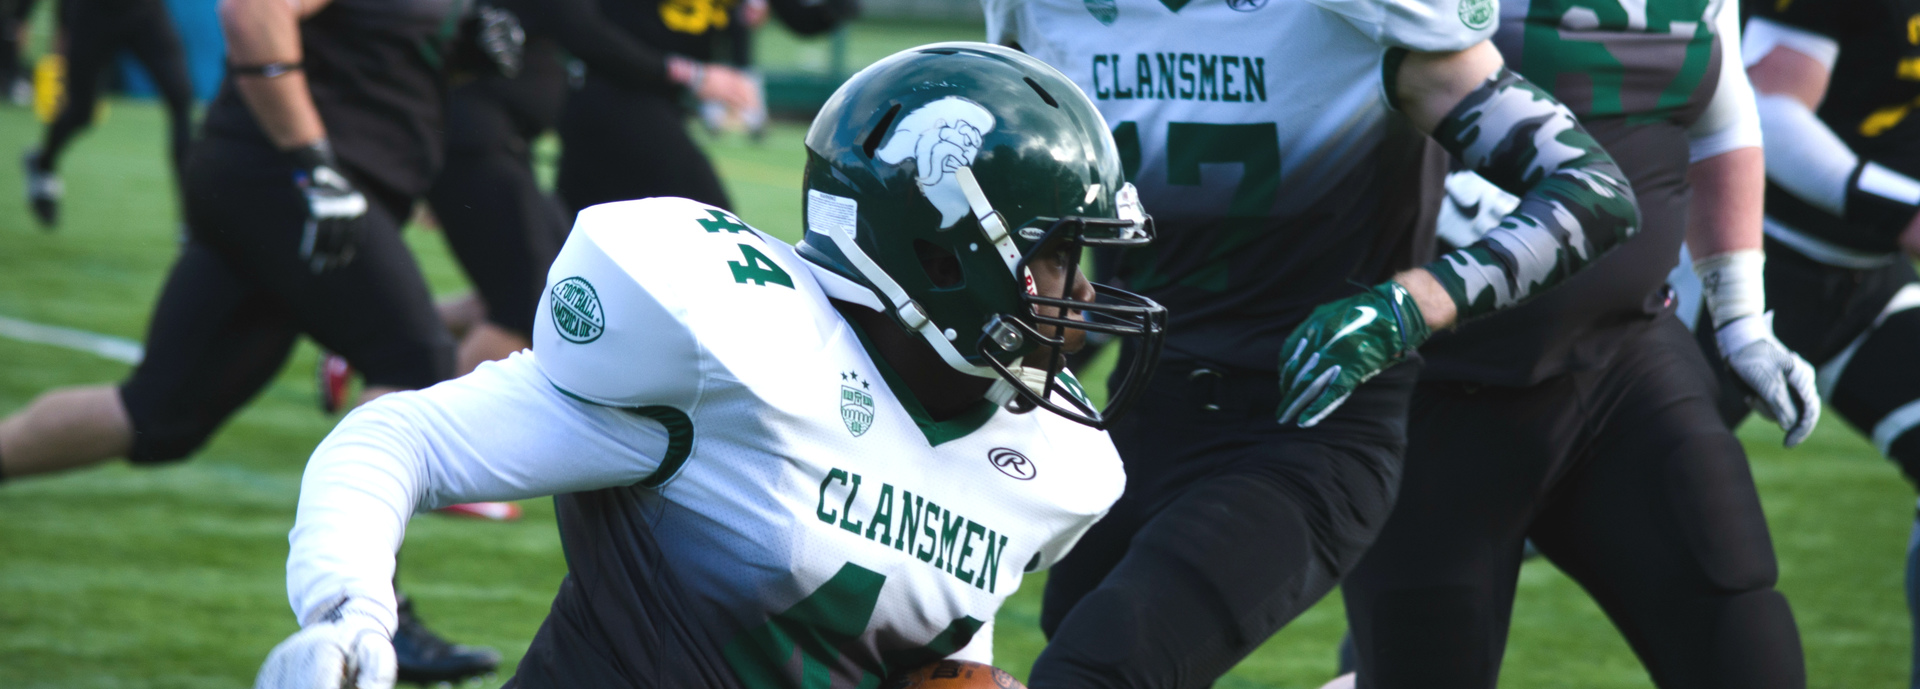 Clansmen American Football Team